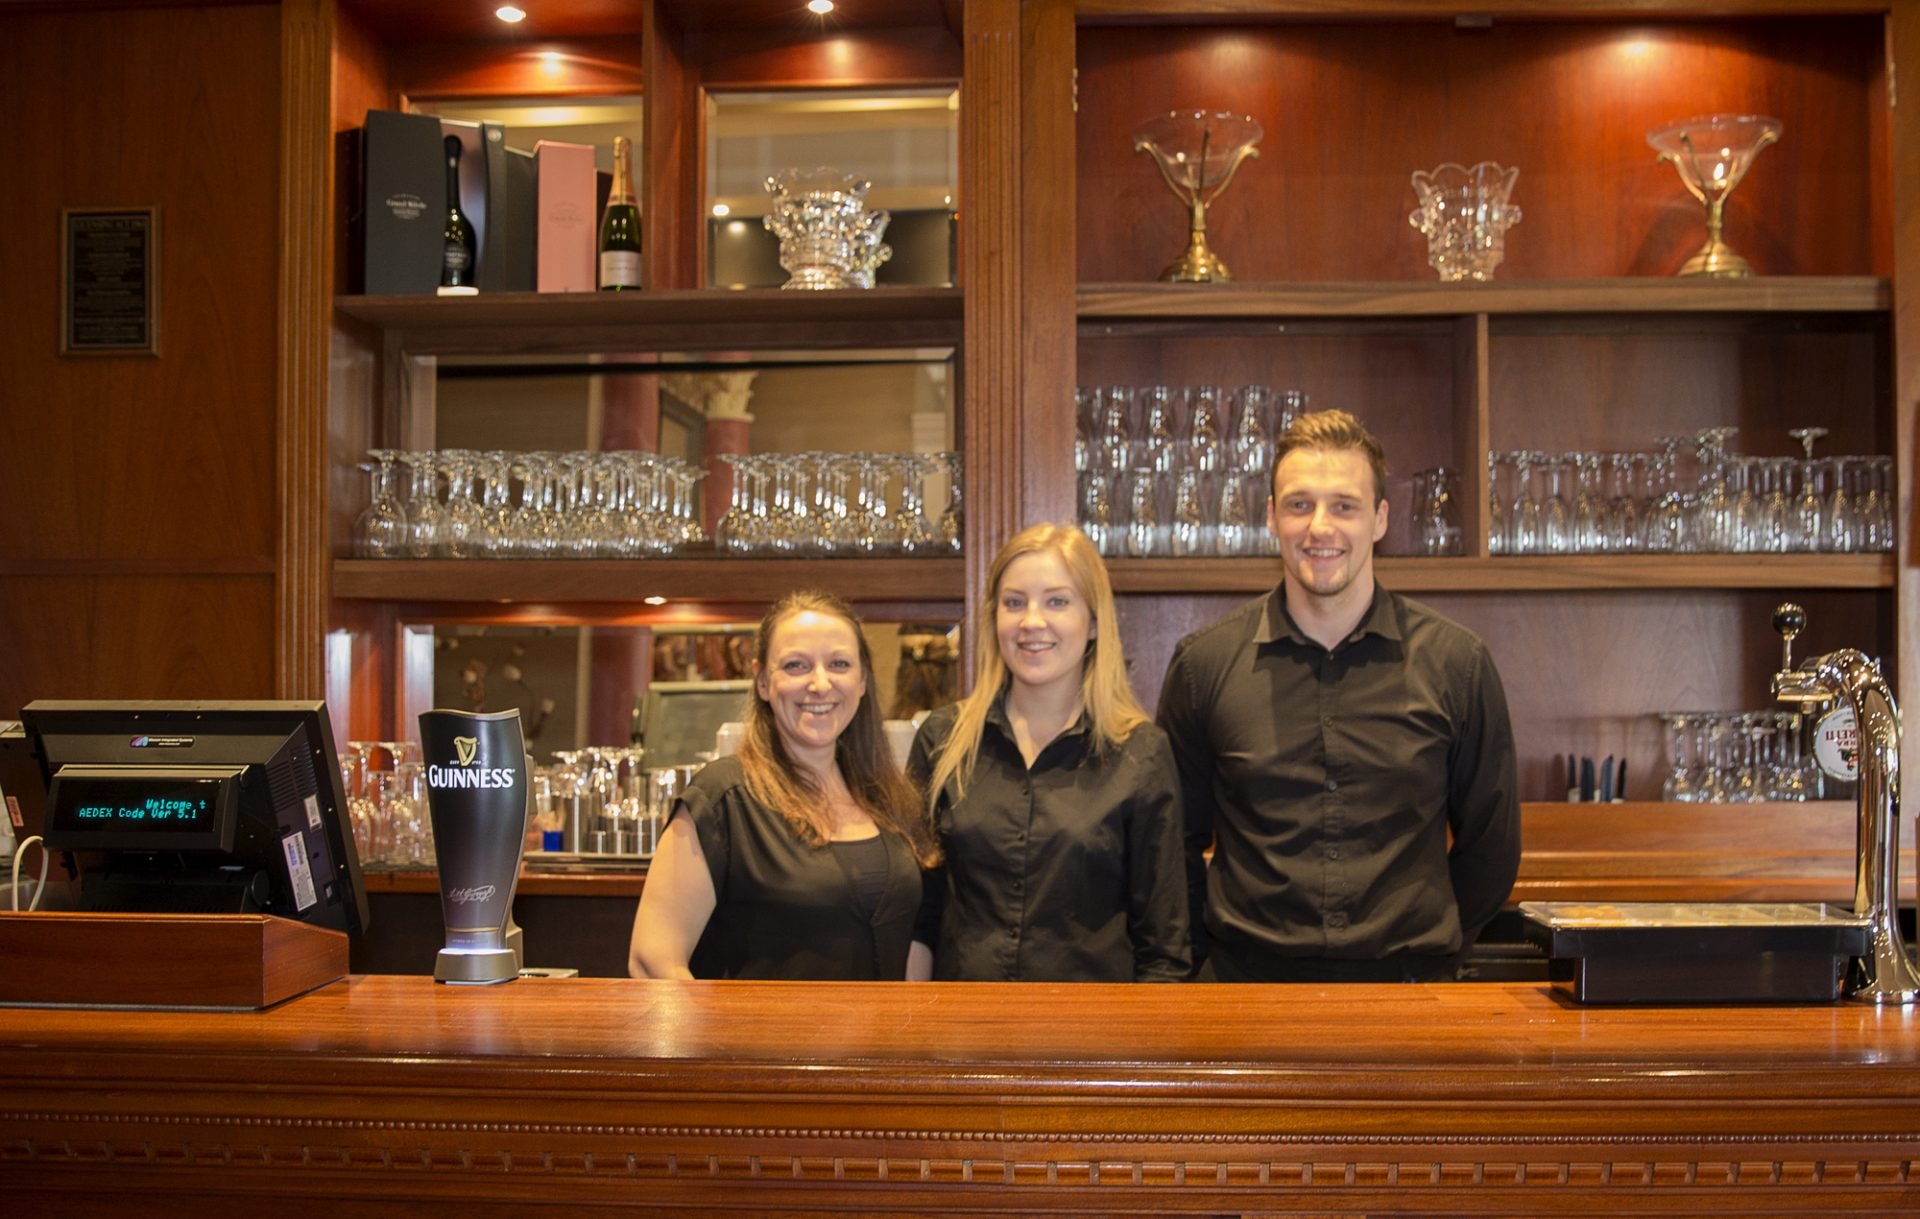 Old English Pubs -friendly staff at the Millstone Hare